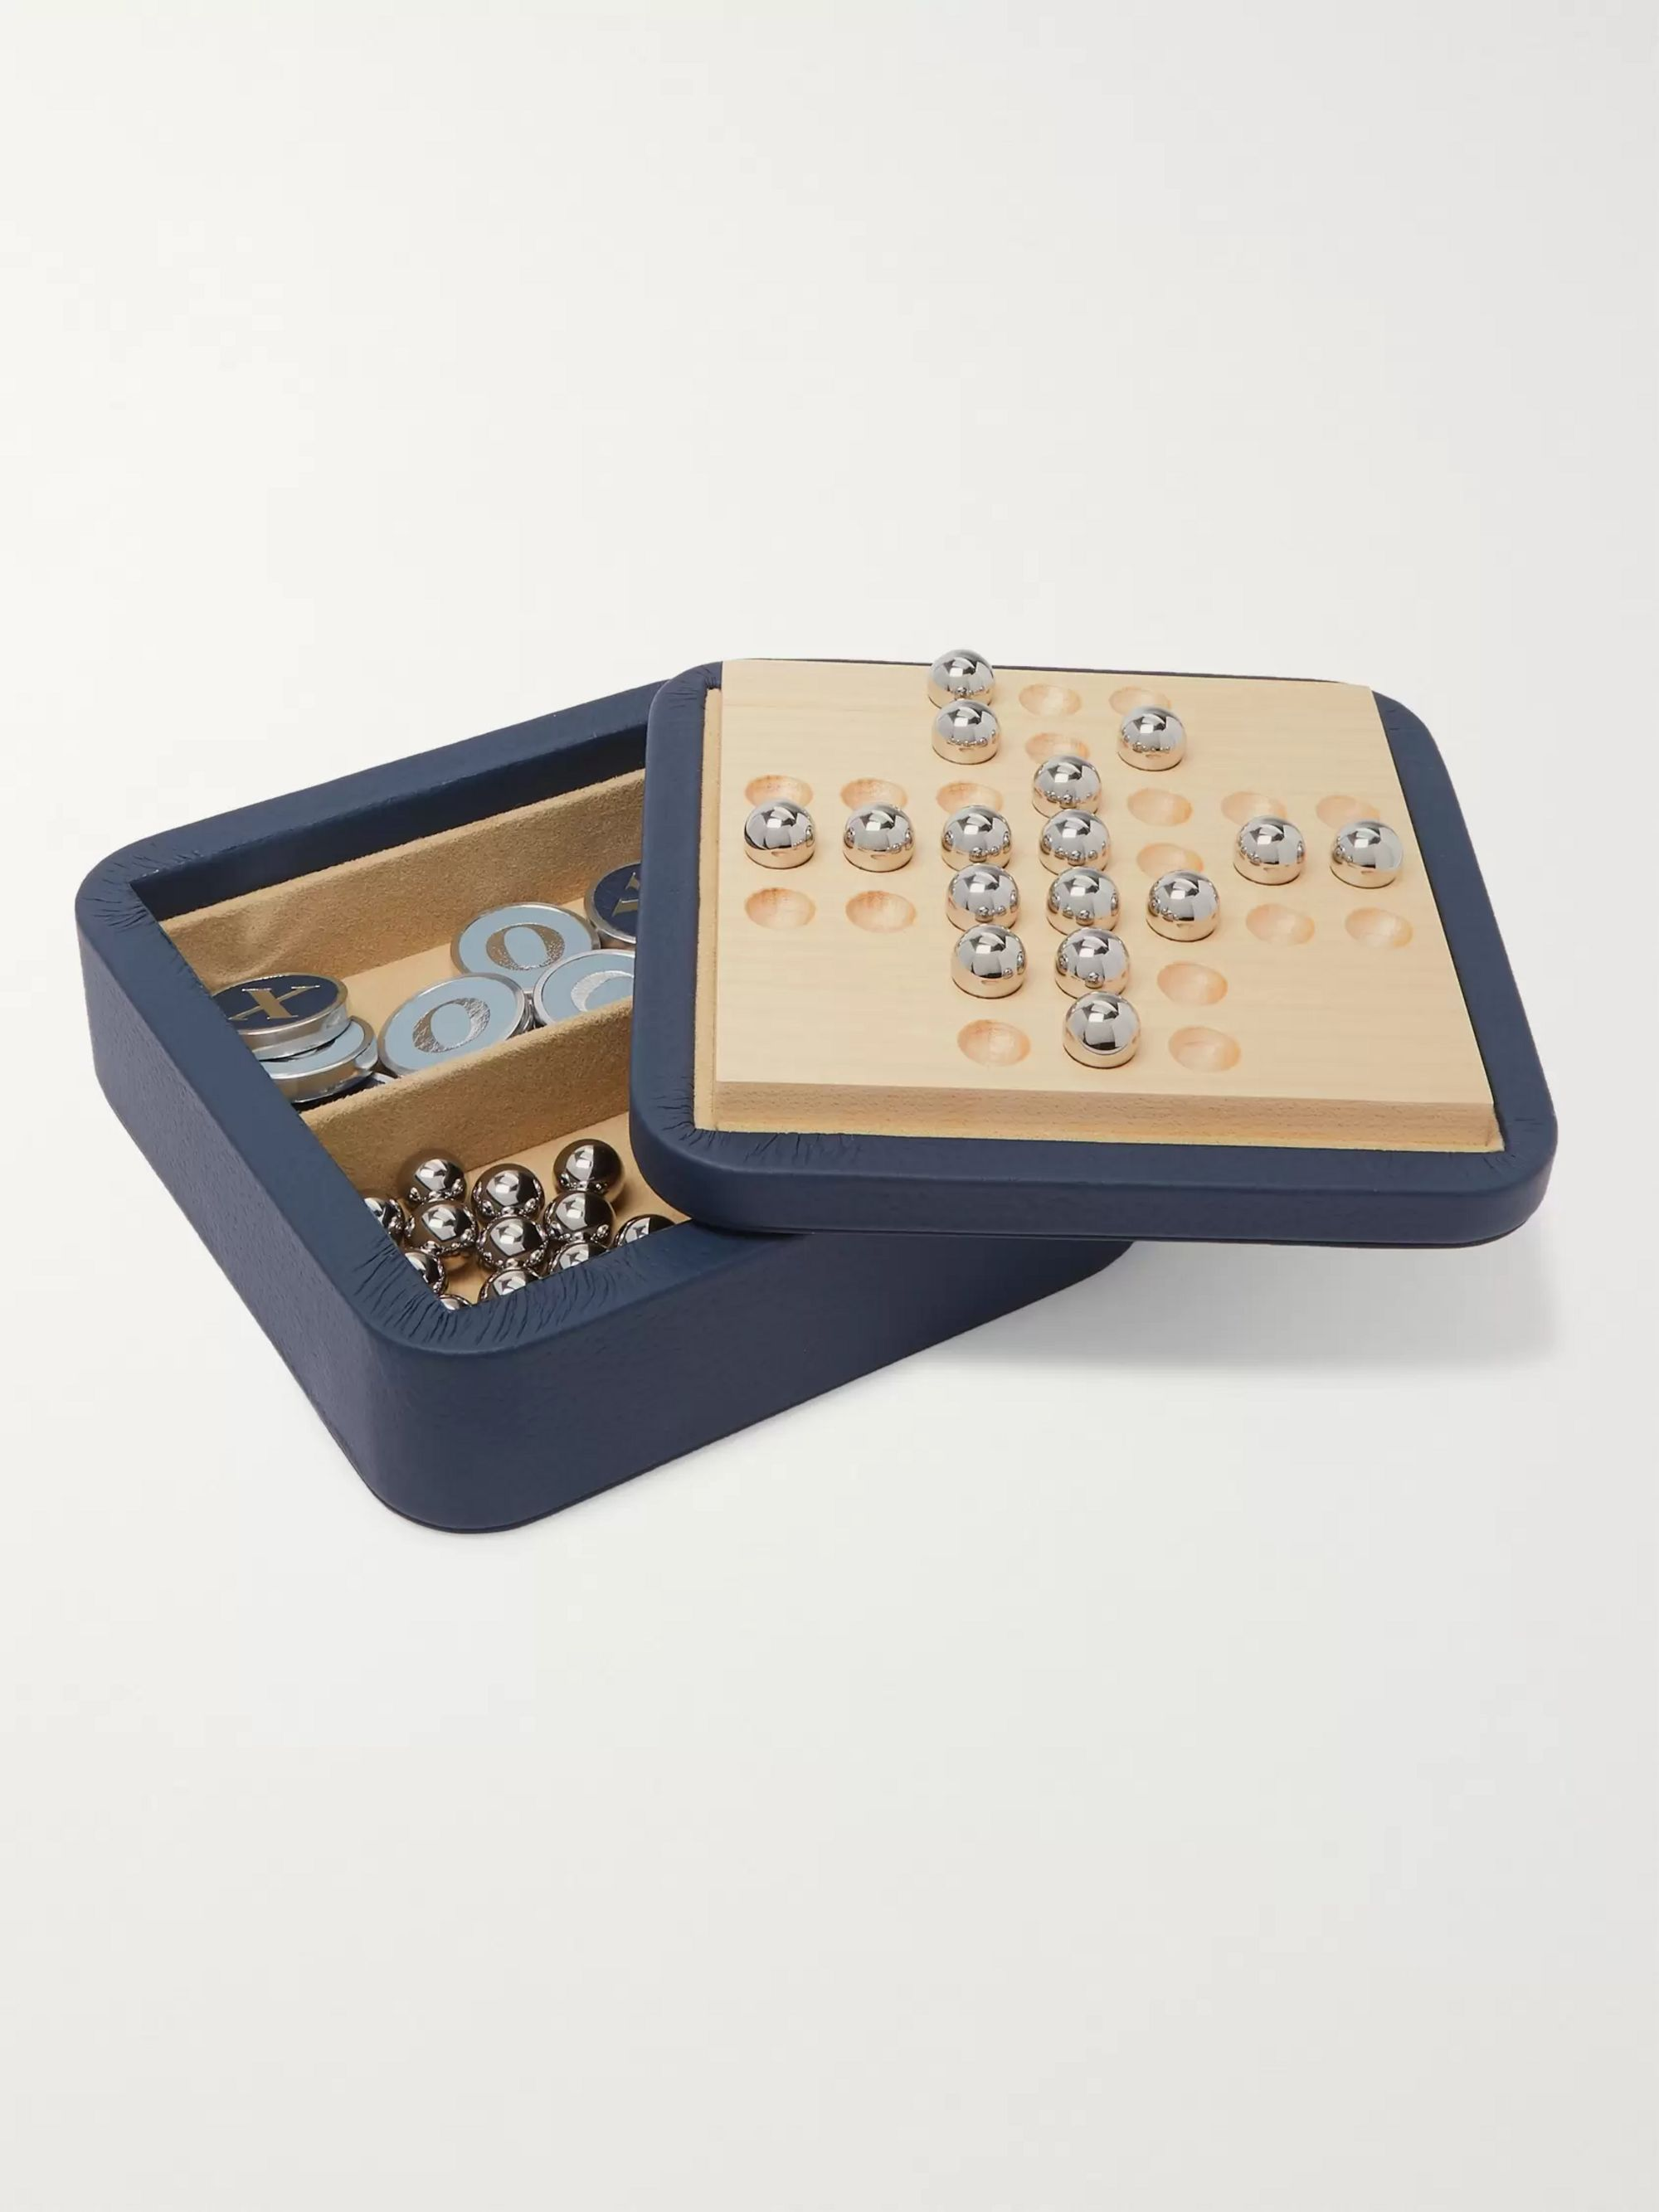 William & Son Leather Solitaire and Noughts & Crosses Set